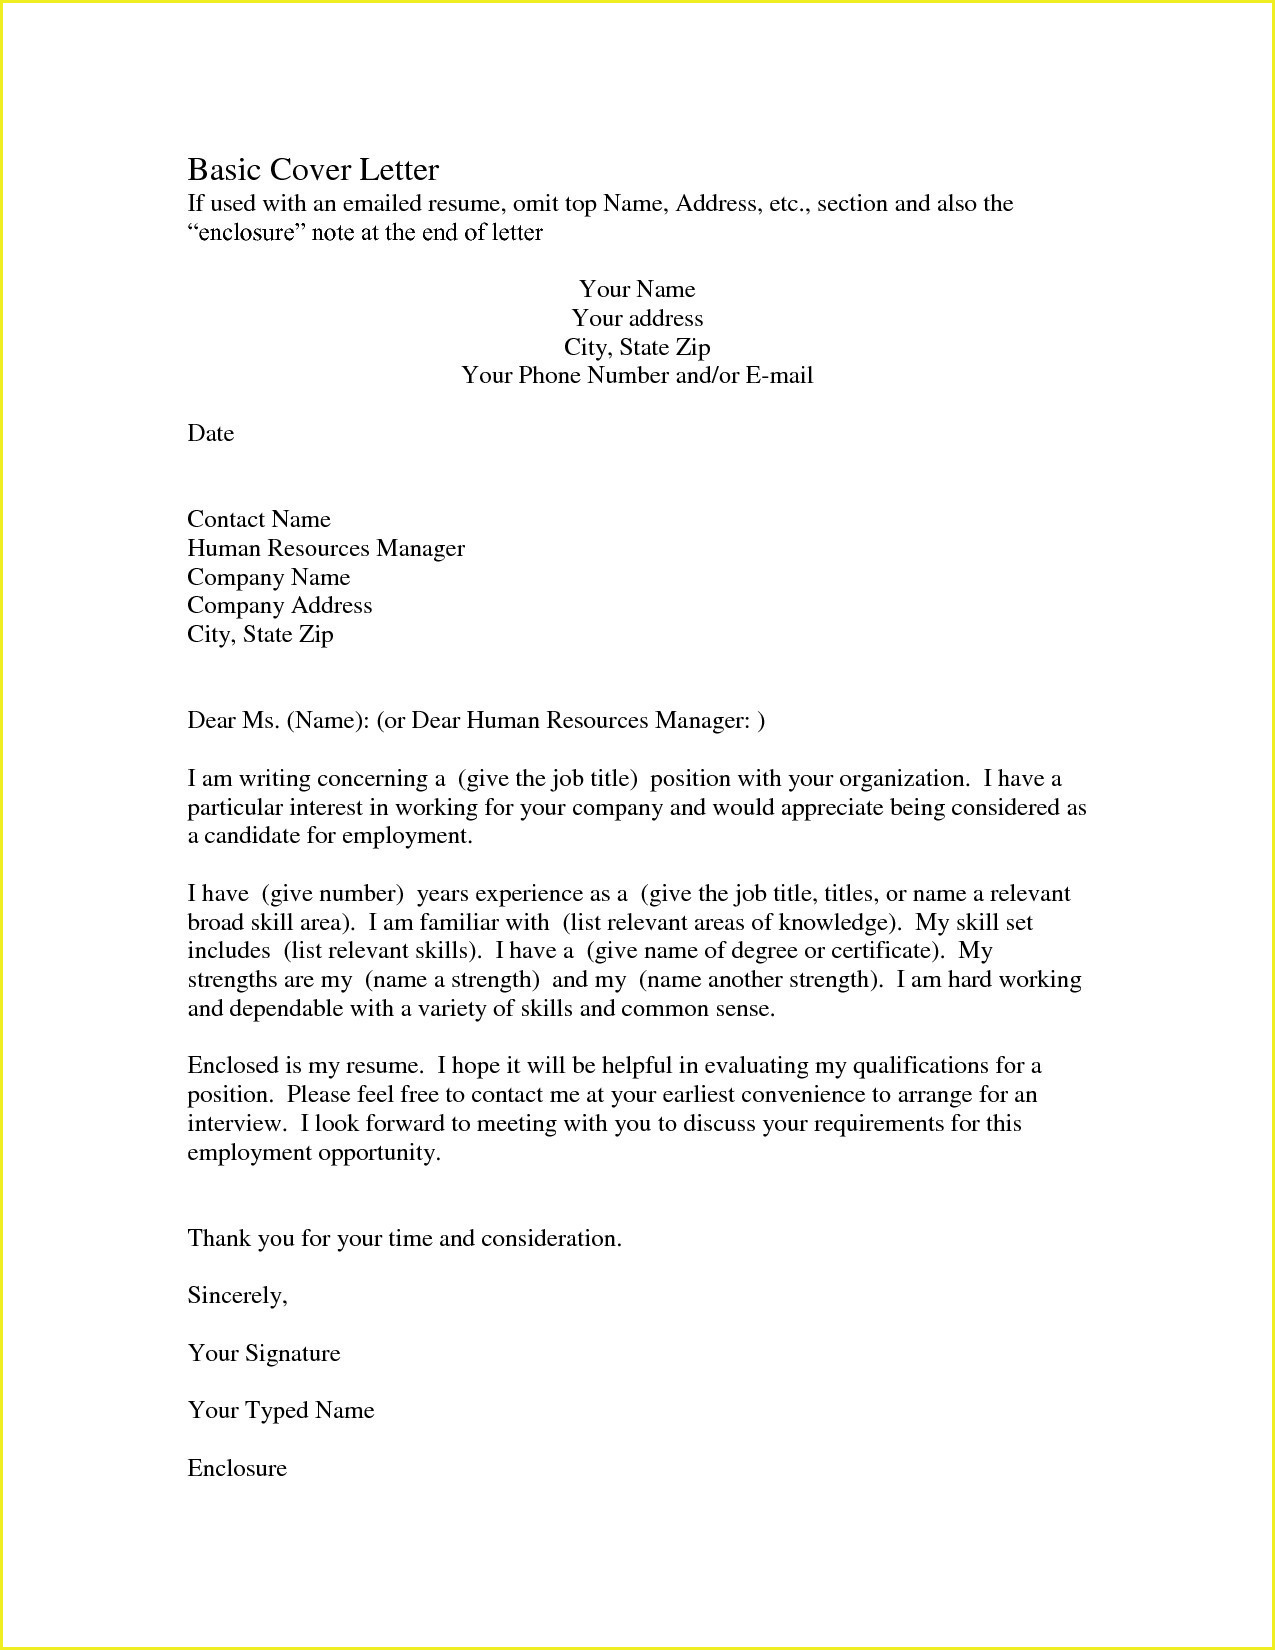 About Me In Resume - Application Letter Sample Luxury Cover Letter for Resume Awesome